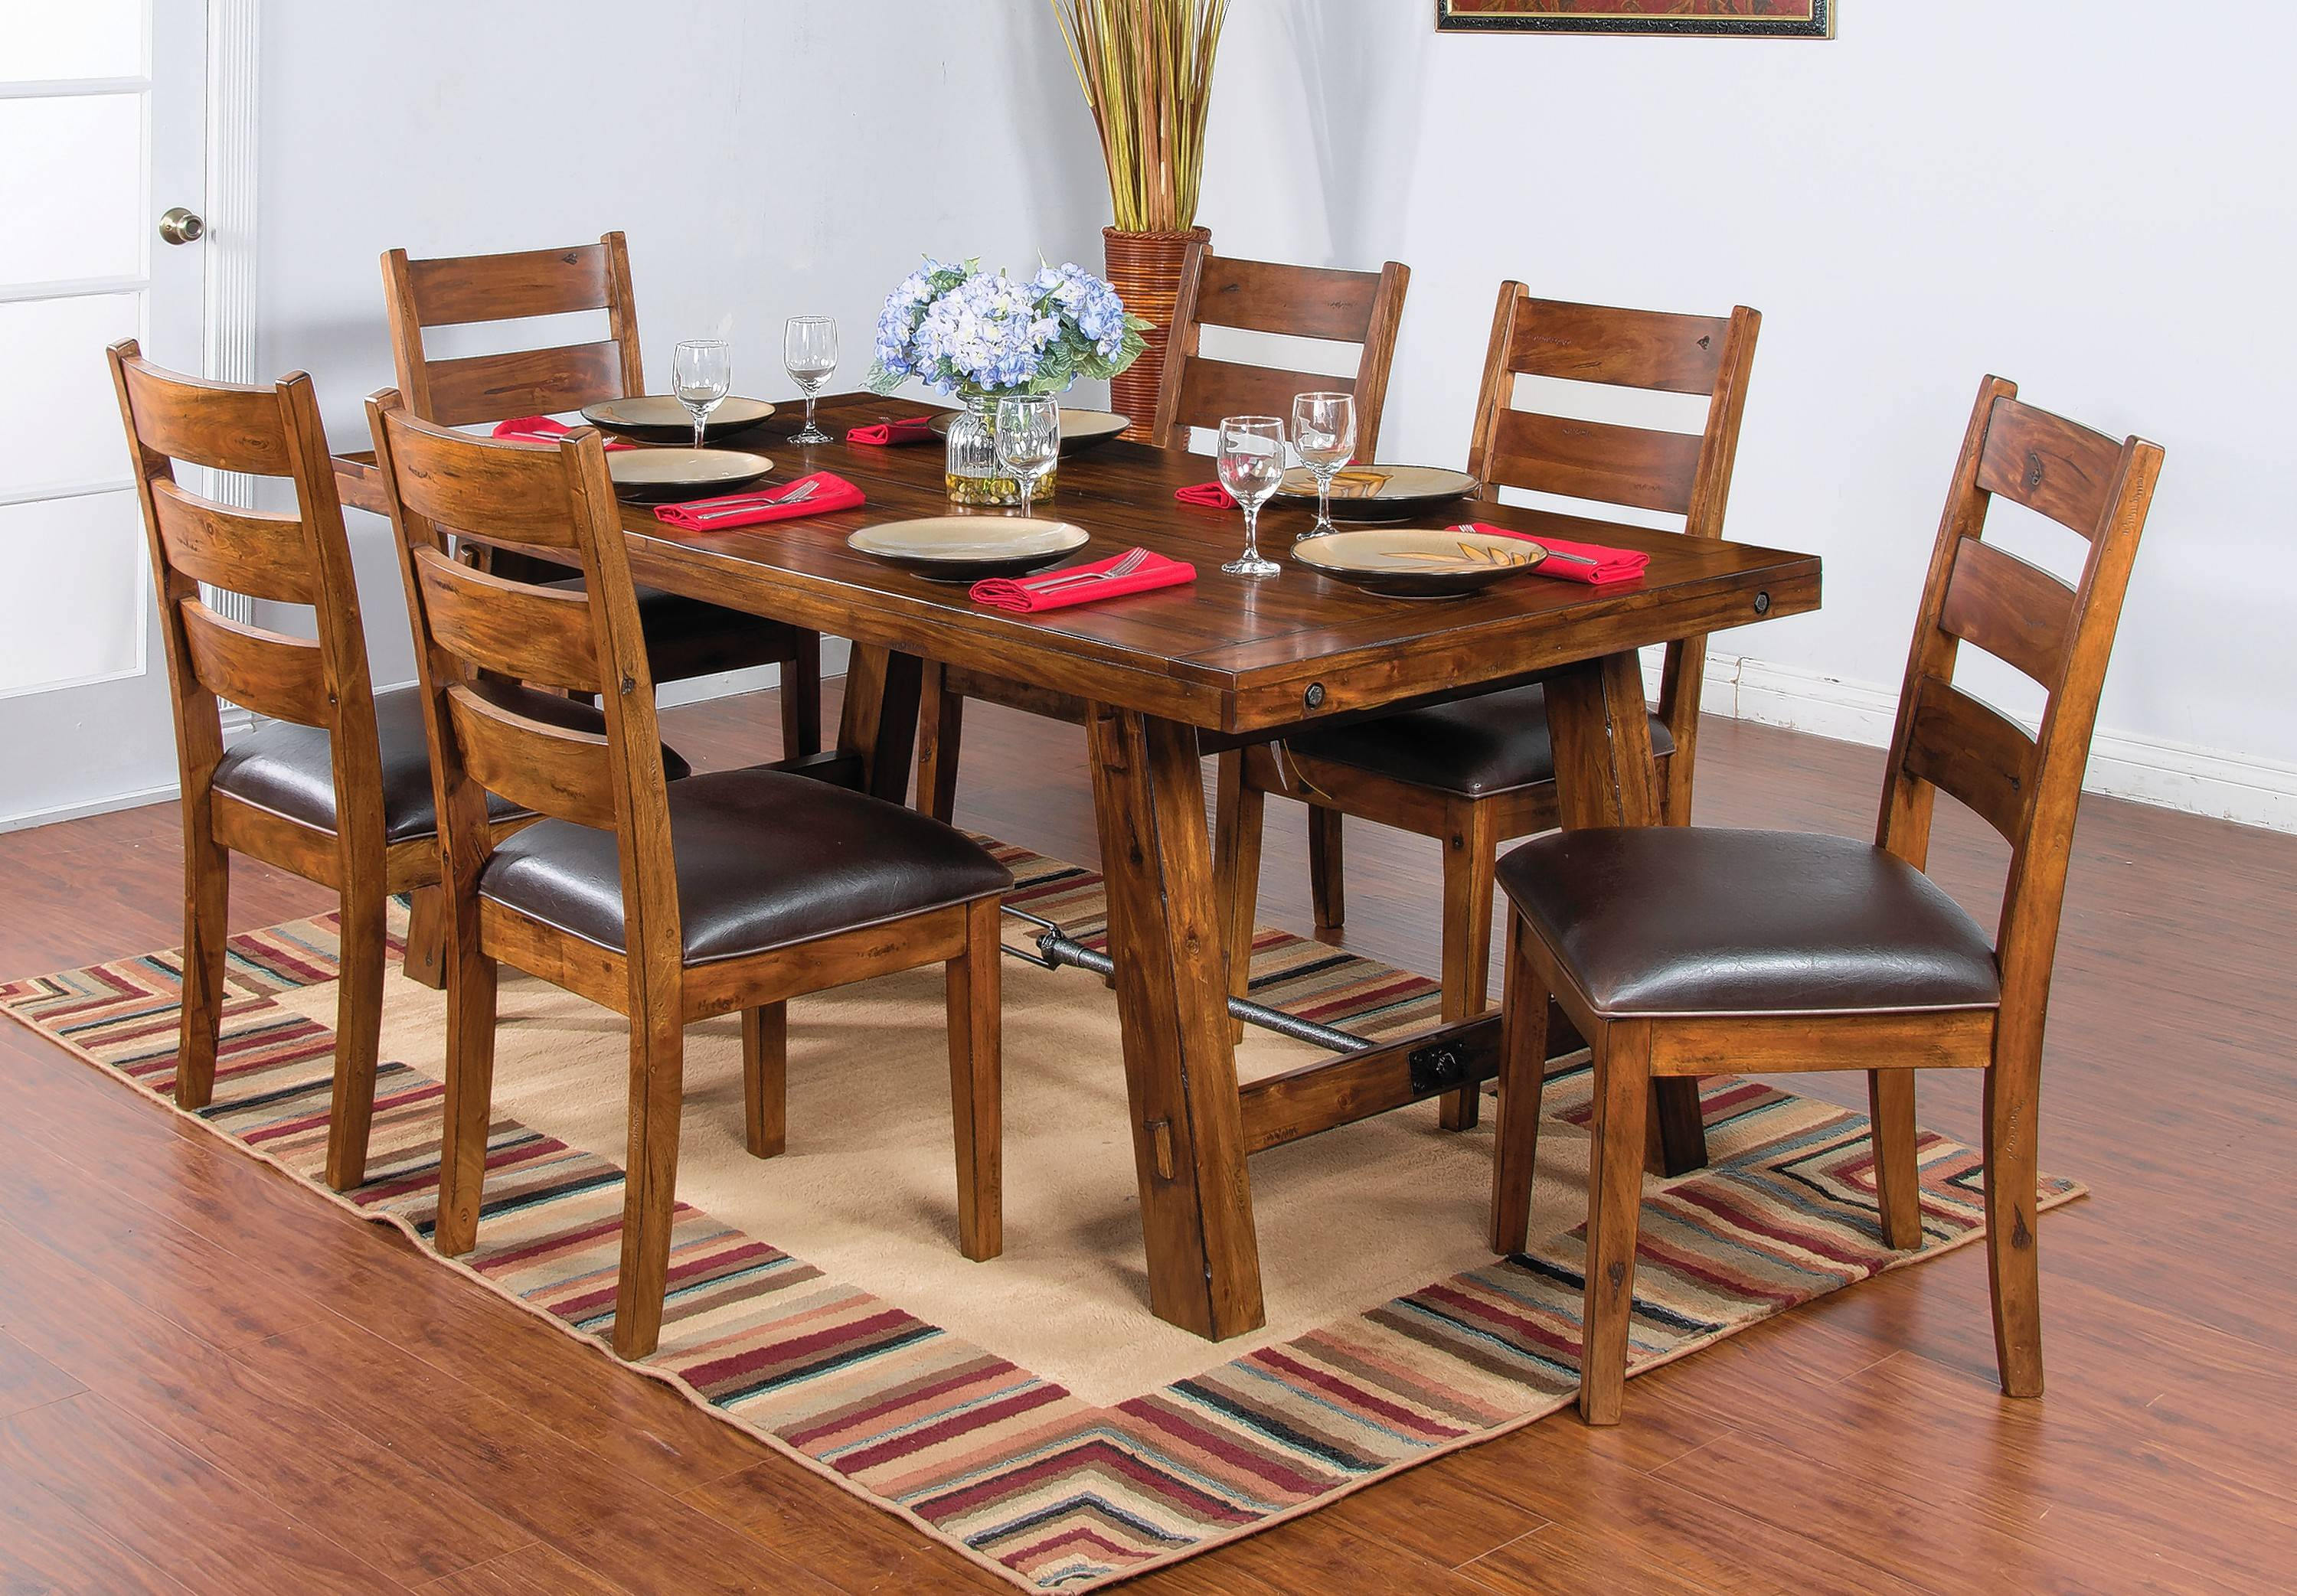 For wood furniture like this dining set, warm walnuts are timeless pieces.